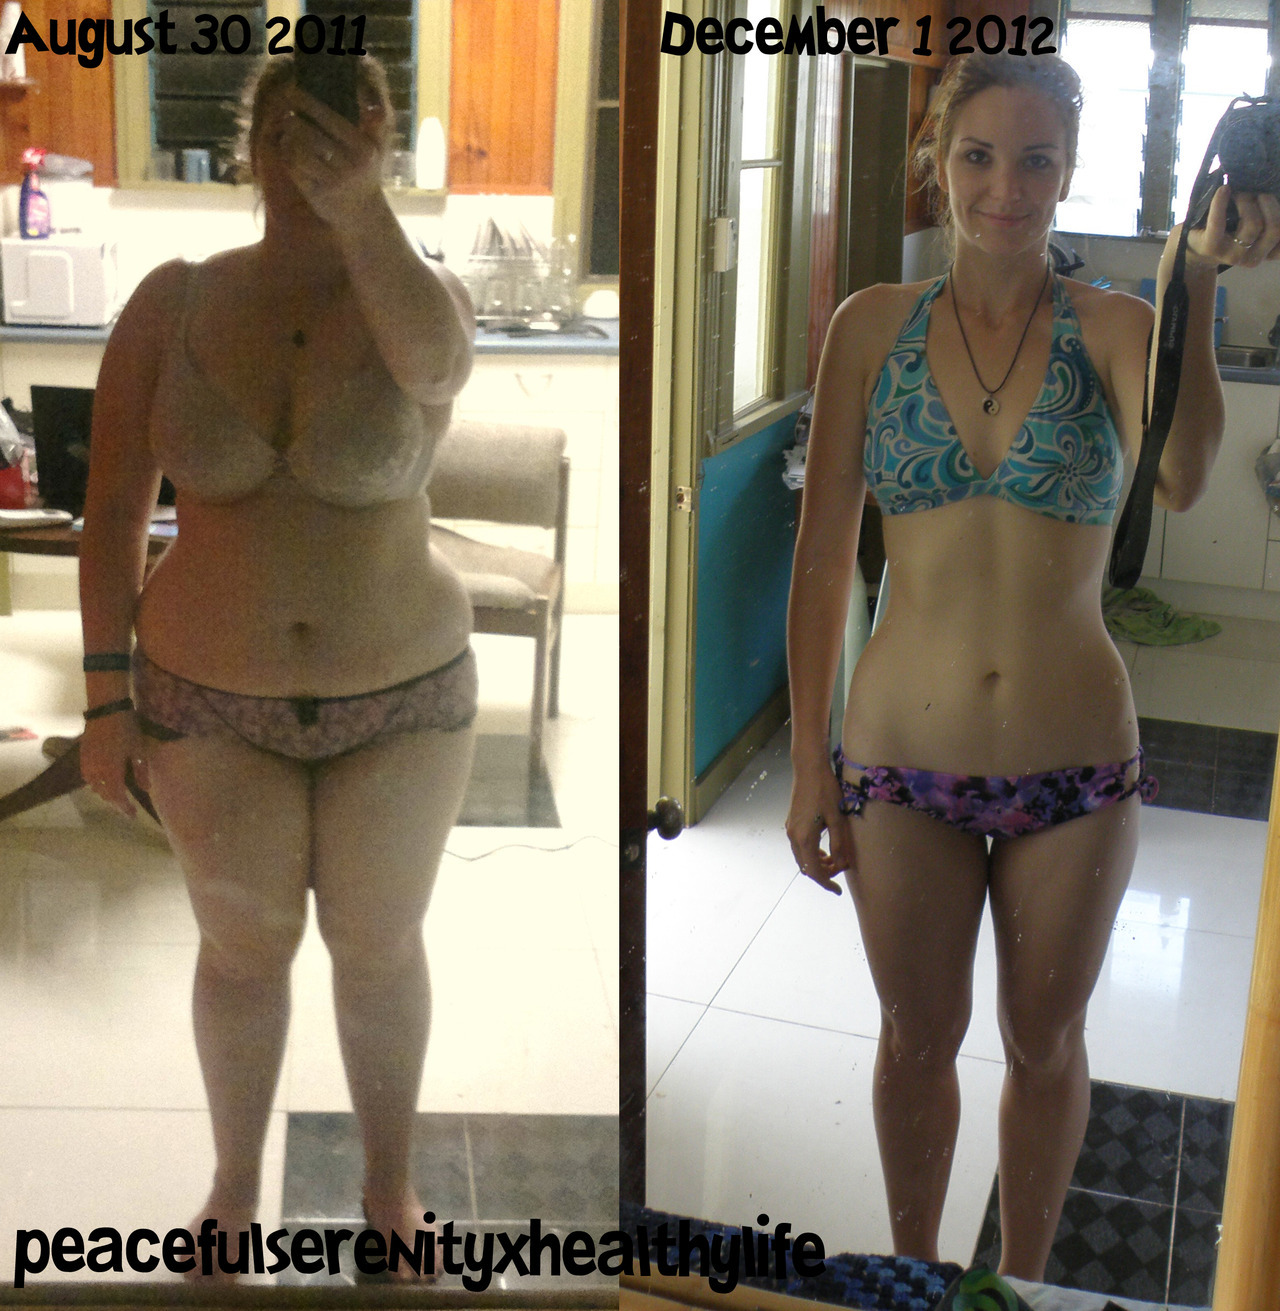 peacefulserenityxhealthylife:  BEFORE AND AFTER! :D August 30 2011: 111.5kgs/ 245lbs December 1 2012: 72.5kgs/ 159lbs Total weight loss over 1 year, 3 months: 39kgs/ 86lbs So, wow?! What an experience this past year has been, as you can see. I went through the grueling process of changing my life shortly after someone mistook me for my pregnant best friend. Needless to say, that was the jab in the heart that I needed to make me re-evaluate my life's choices. As I'm sure it's evident to most who've lost weight/are in the process, the beginning is always the most difficult. It's reassessing food choices, changing those habits that lead us down the path of internal (and external!) destruction. After a few months, the exercise became easier- enjoyable I'd go as far to say. Actually, I just got BETTER. Healthy choices were becoming my own preferred choice and my life began to hit the exponent. Through dedication, sweat (alot, of sweat) and unwavering drive to succeed the ultimate health and fitness for myself, I blasted through 39kgs of unhealthy fat holding me back in more ways than one. Now, no longer do I hide my body behind long clothes. Anything more than the acceptable bare minimum is a little bothersome to wear! I'm proud of what I've achieved, I'm proud to finally feel comfortable in my own skin. My mental strength has improved dramatically, that's a given after pushing myself beyond what I thought my limits were so many times. I've realised a few somethings along this journey: You only get out what you put in. When you're at your maximum and think you can go no further, that is where it counts. That is where you drill your mind to sculpt yourself into who you want to become. When you've given your all, give a little more. It's what separates you from the rest. Health is the only thing that matters in this world. Without it, what do we have? Exactly. So it is now that I invite you to share your success story. What have been your victories? What are your strengths? Where have you surpassed your own beliefs in what you thought possible? Create a post, no matter where you're at in your journey. The smallest of victories are just as important as major successes. Let me know of your post, I want to read your stories. I want to be inspired further. Without the support, compliments and you lovely people- this journey for me never would have continued. So, thank you. x Danielle.